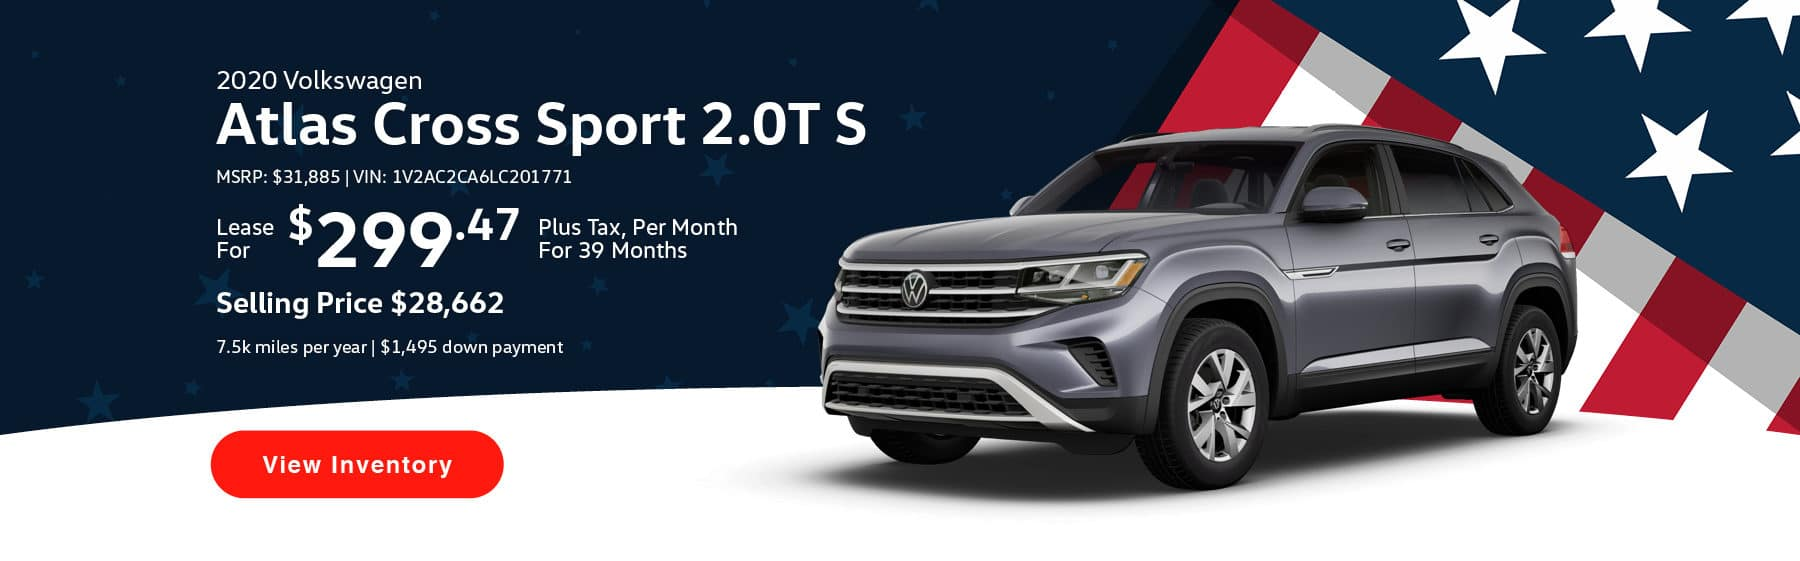 Lease the 2020 Atlas Cross Sport 2.0T S for $299.47 per month, plus tax for 39 months.